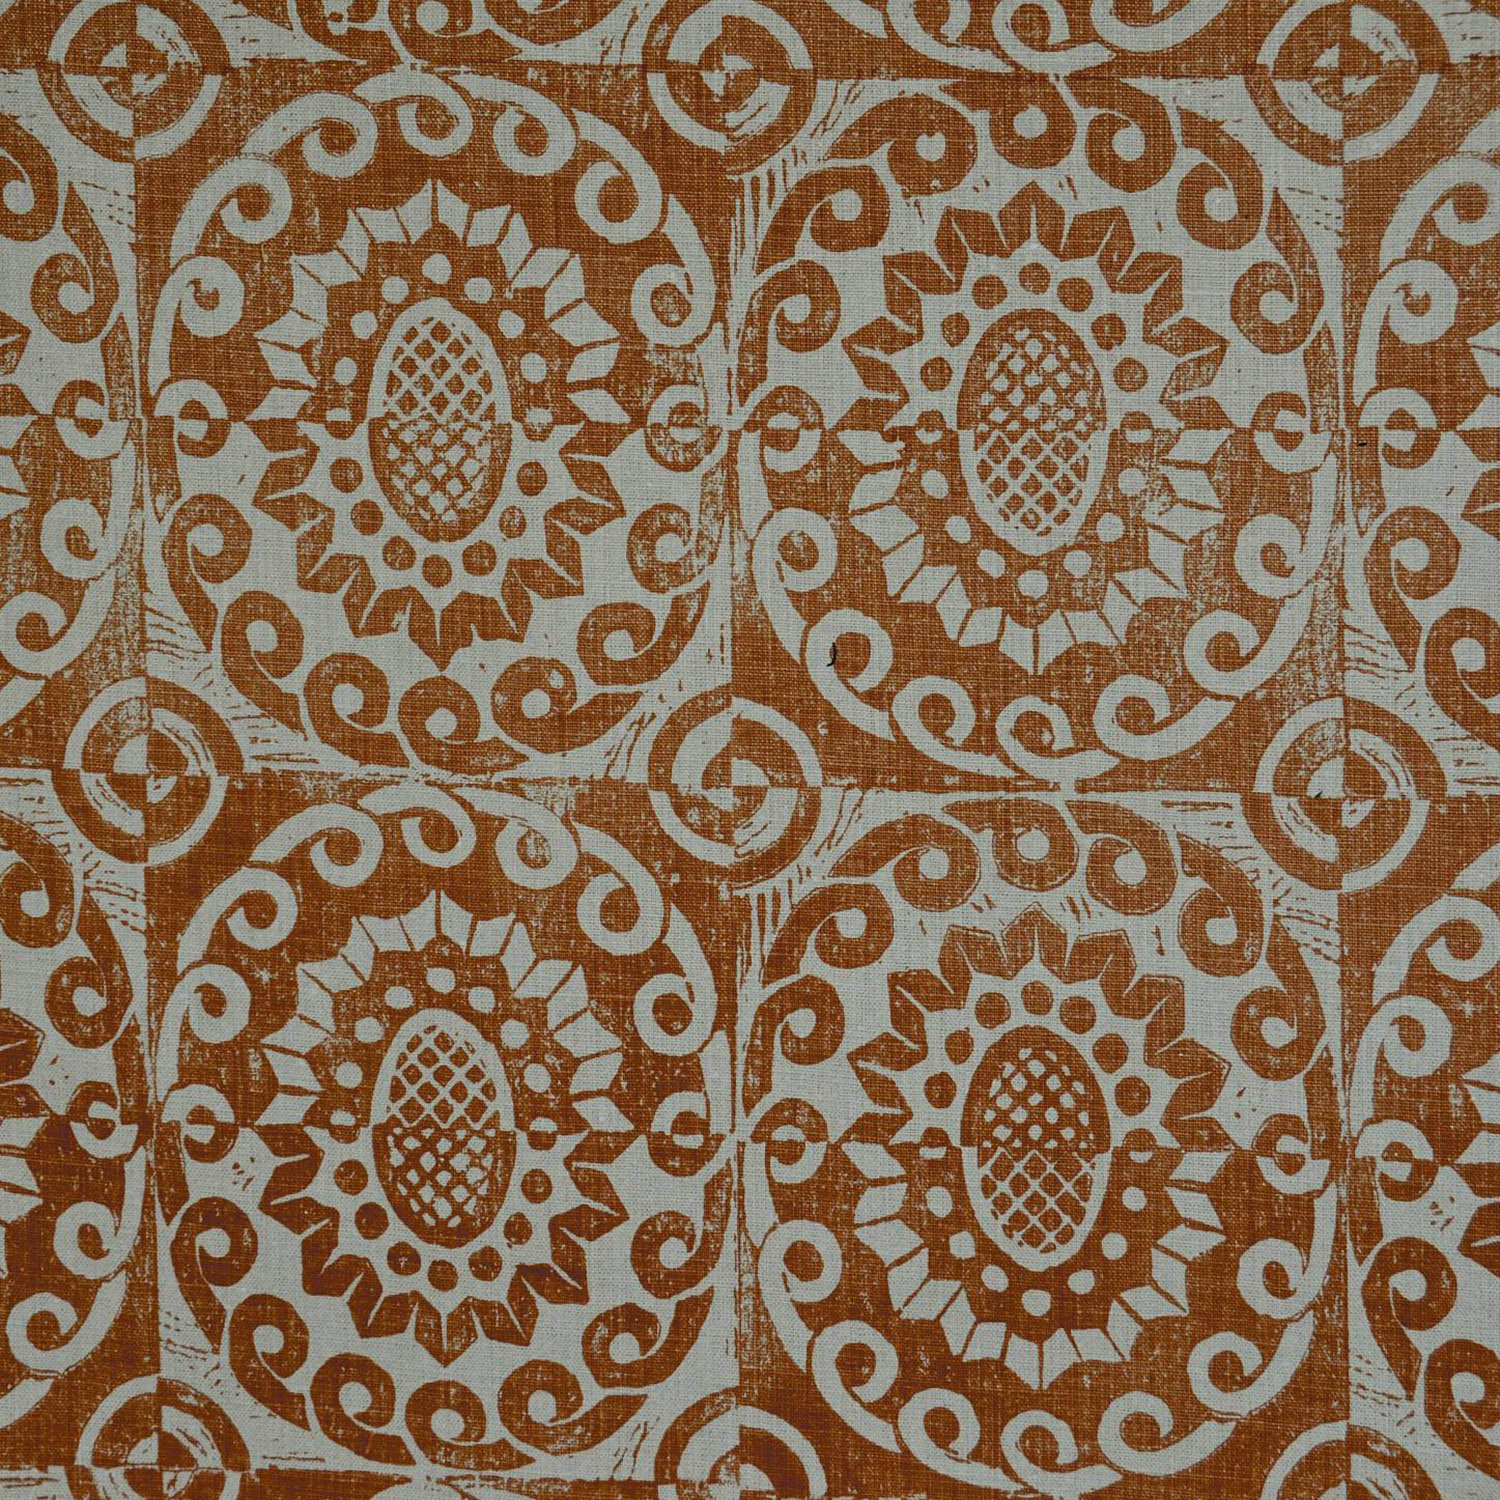 <p><strong>PINEAPPLE</strong>pumpkin/rustic 3200-02<a href=/the-peggy-angus-collection/pineapple-pumpkin-rustic-3200-02>More →</a></p>